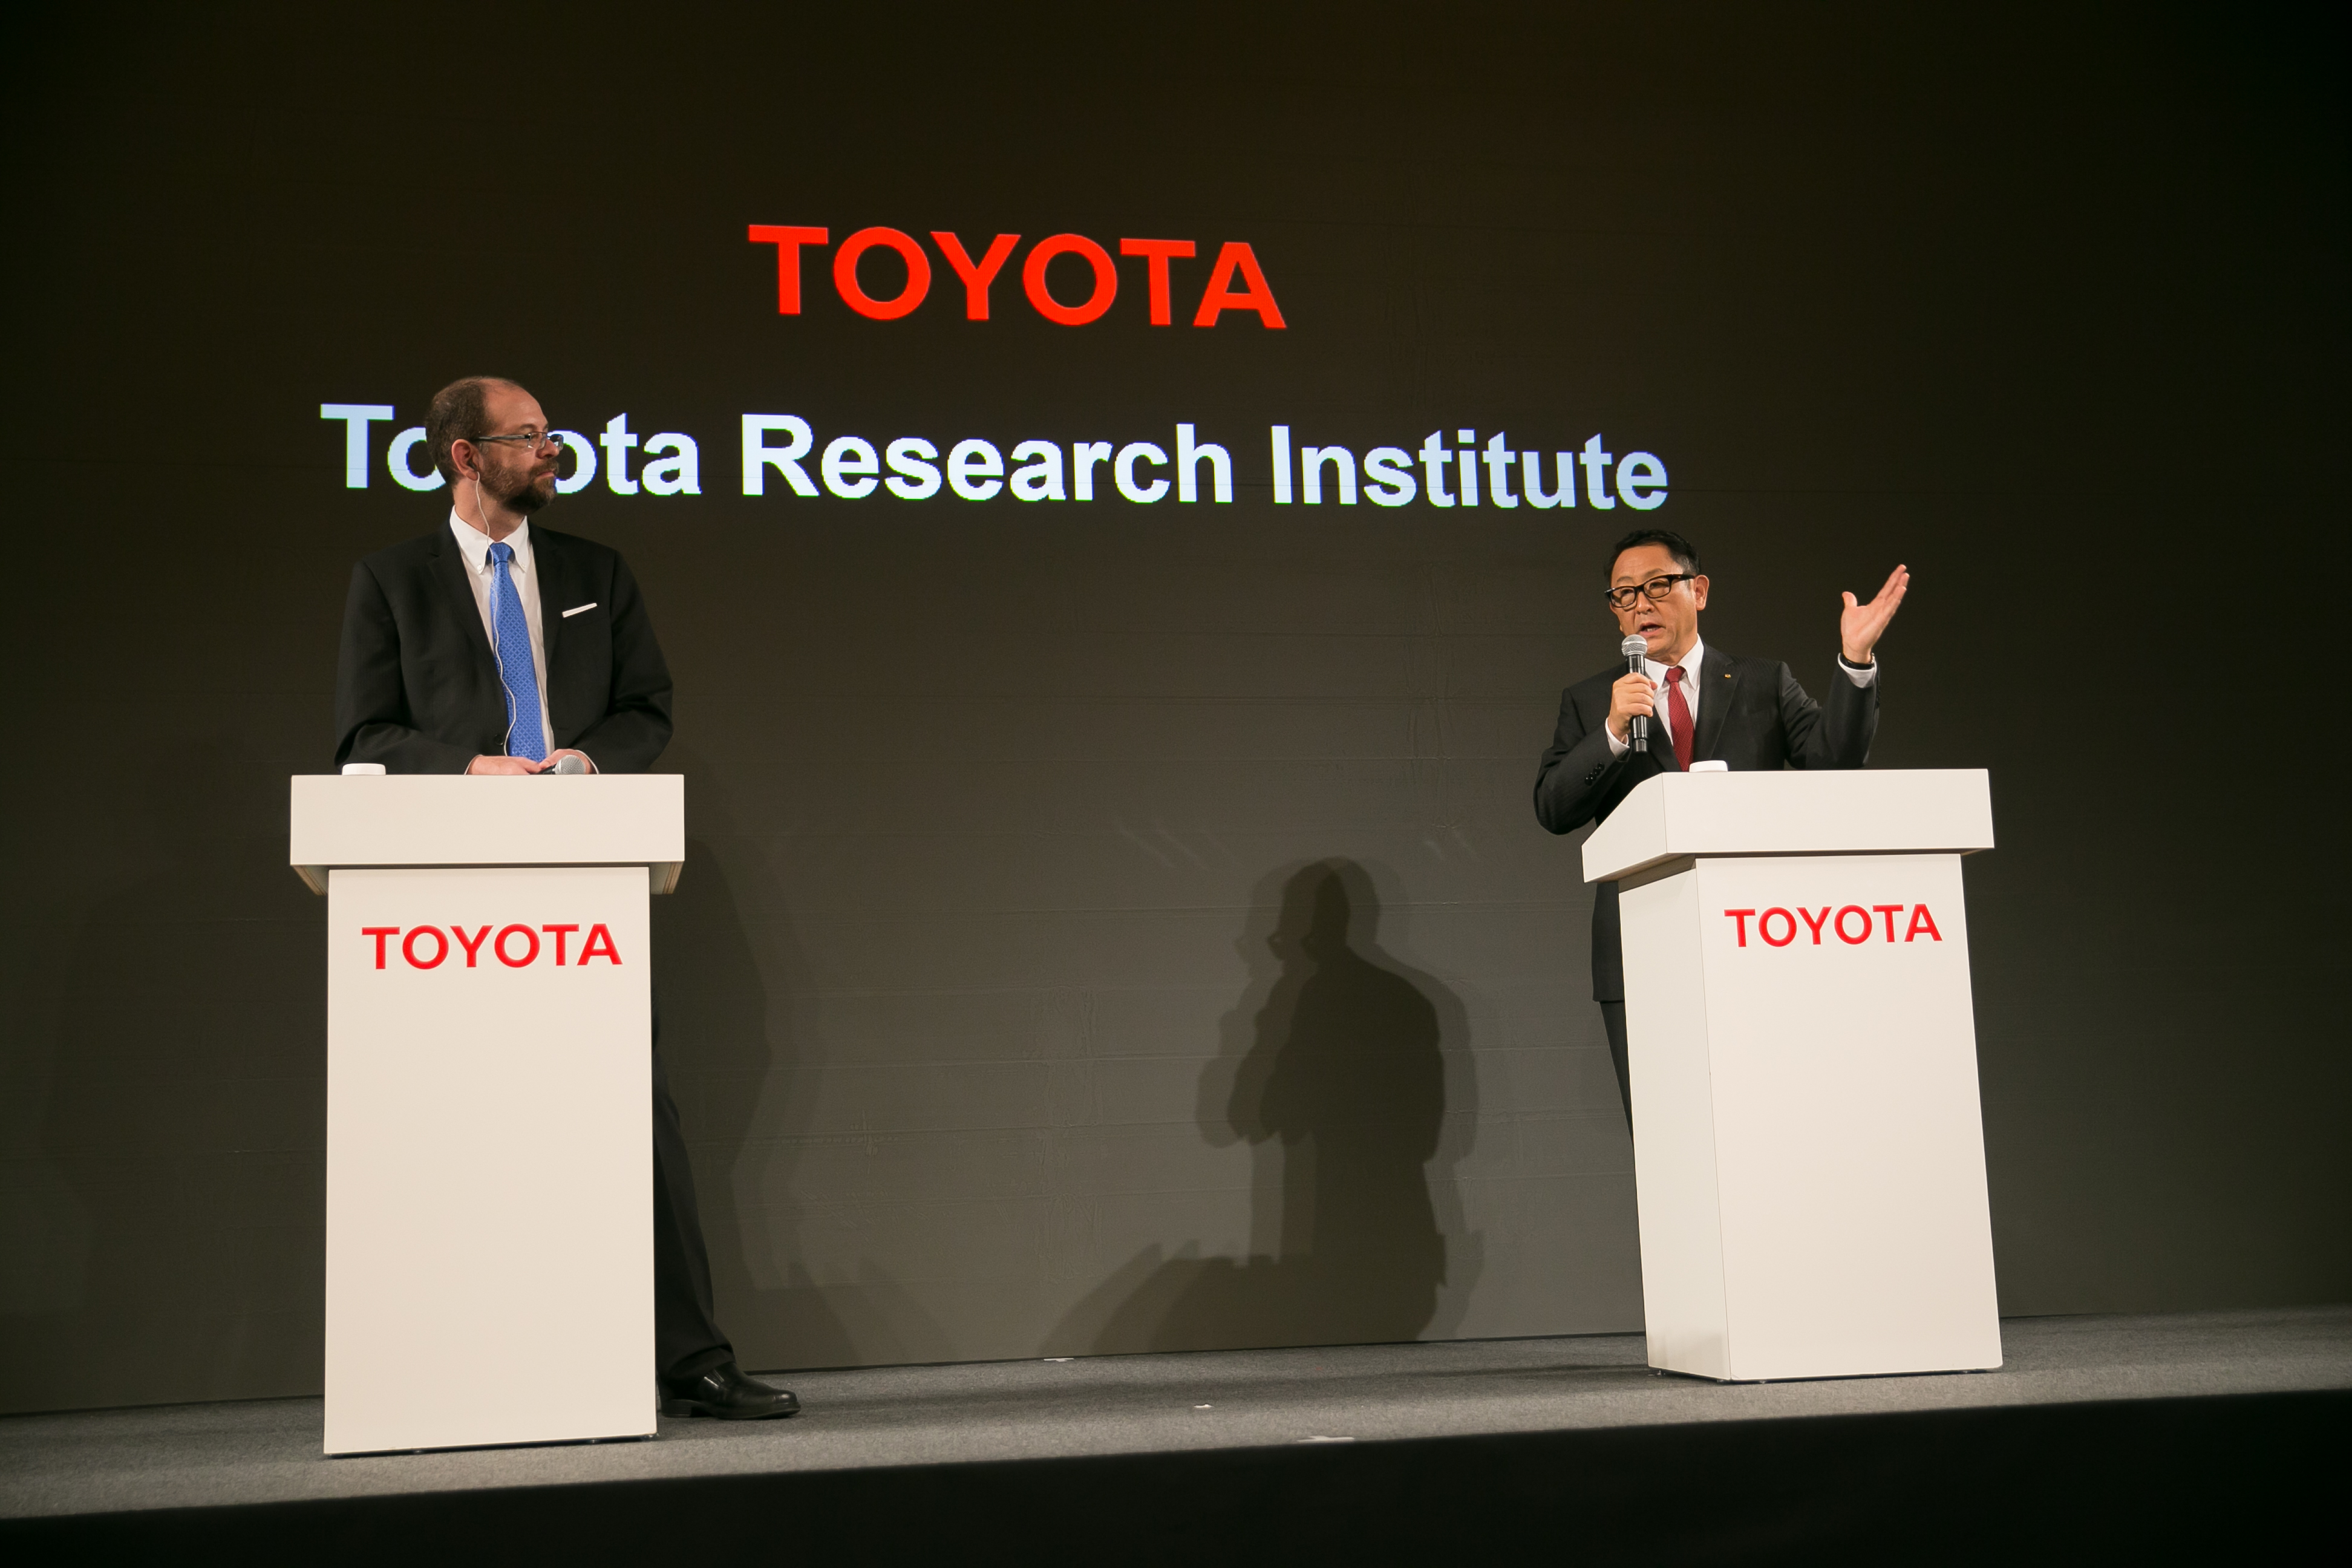 Introducing Toyota's new star.